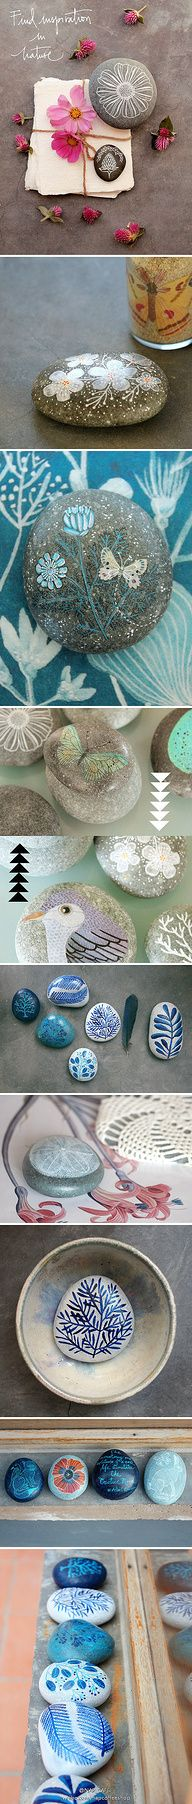 cool ideas for all the rocks my kids collect